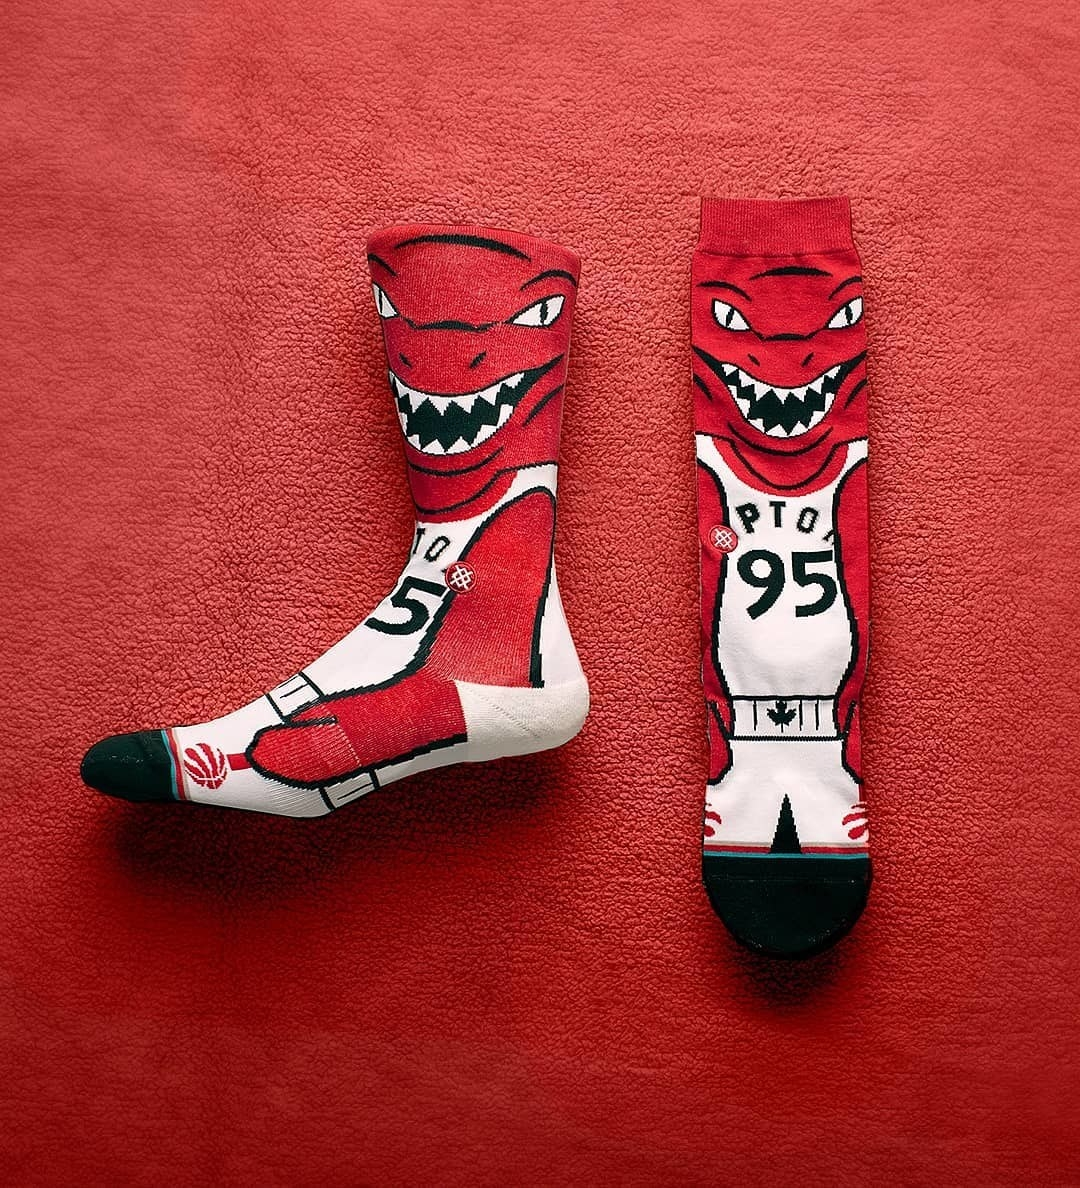 A pair of socks with an illustration of the NBA raptors